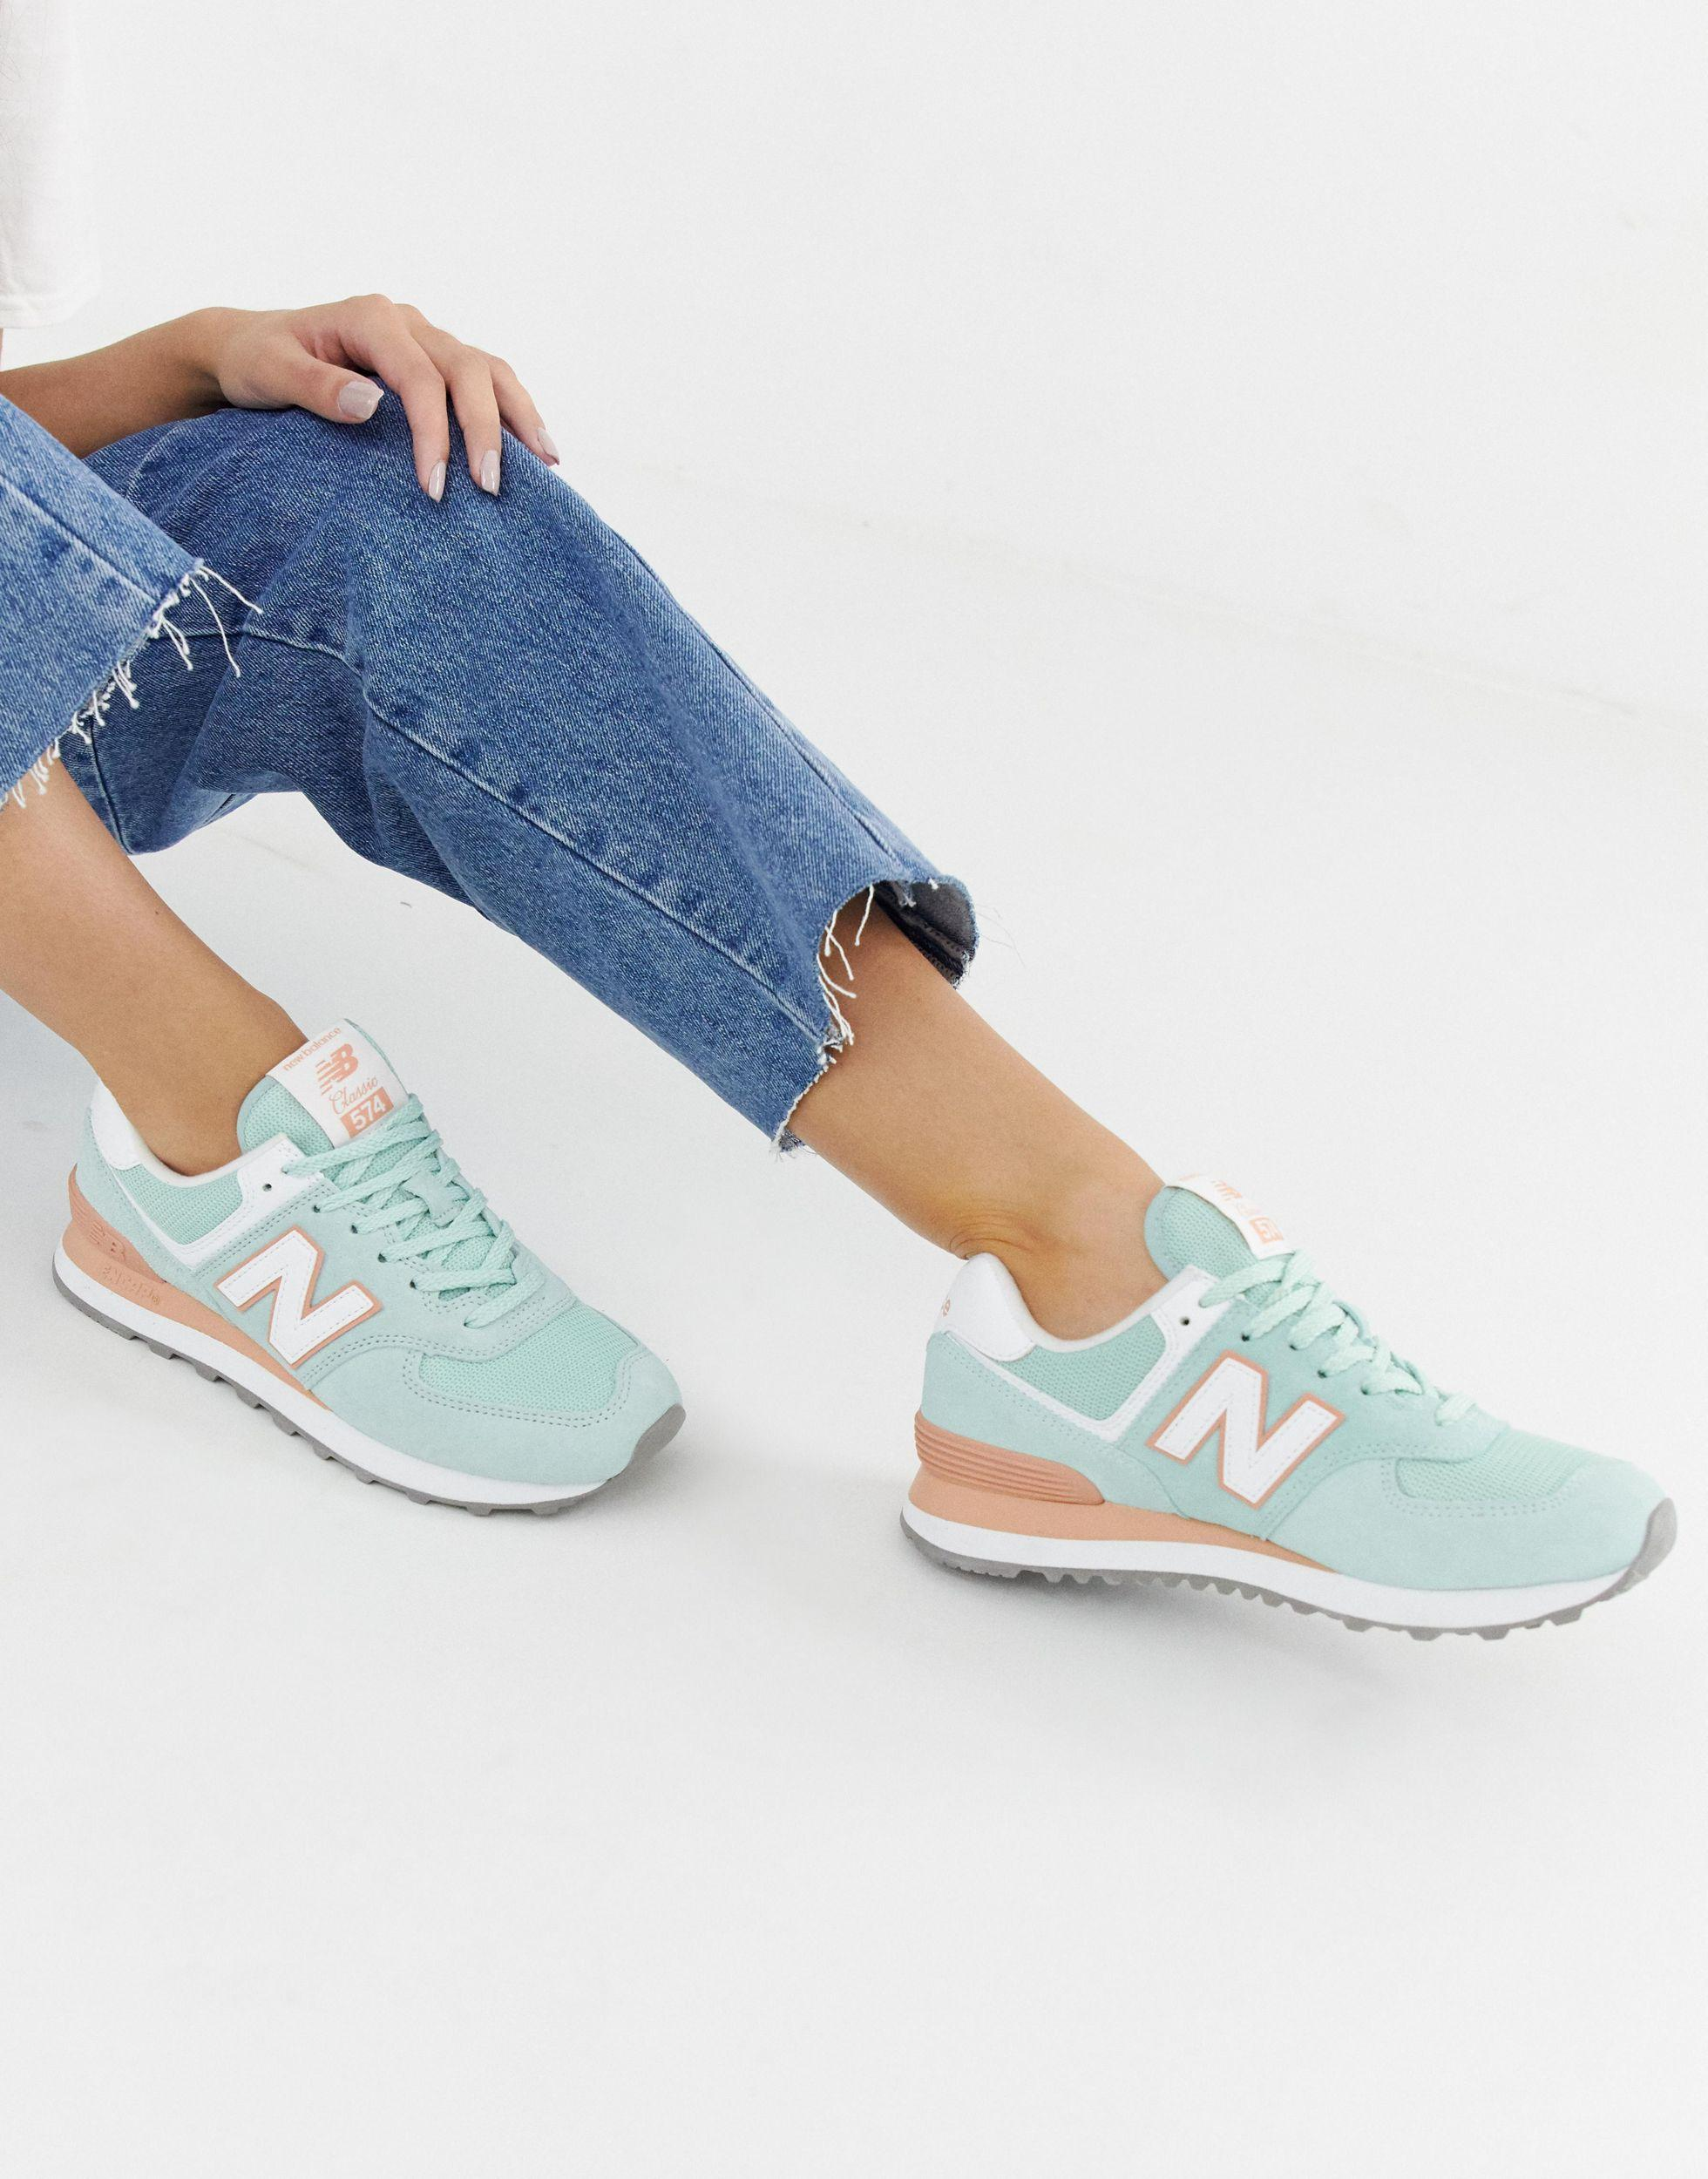 New Balance Rubber 574 V2 Pastel Mint Sneakers in Green - Lyst